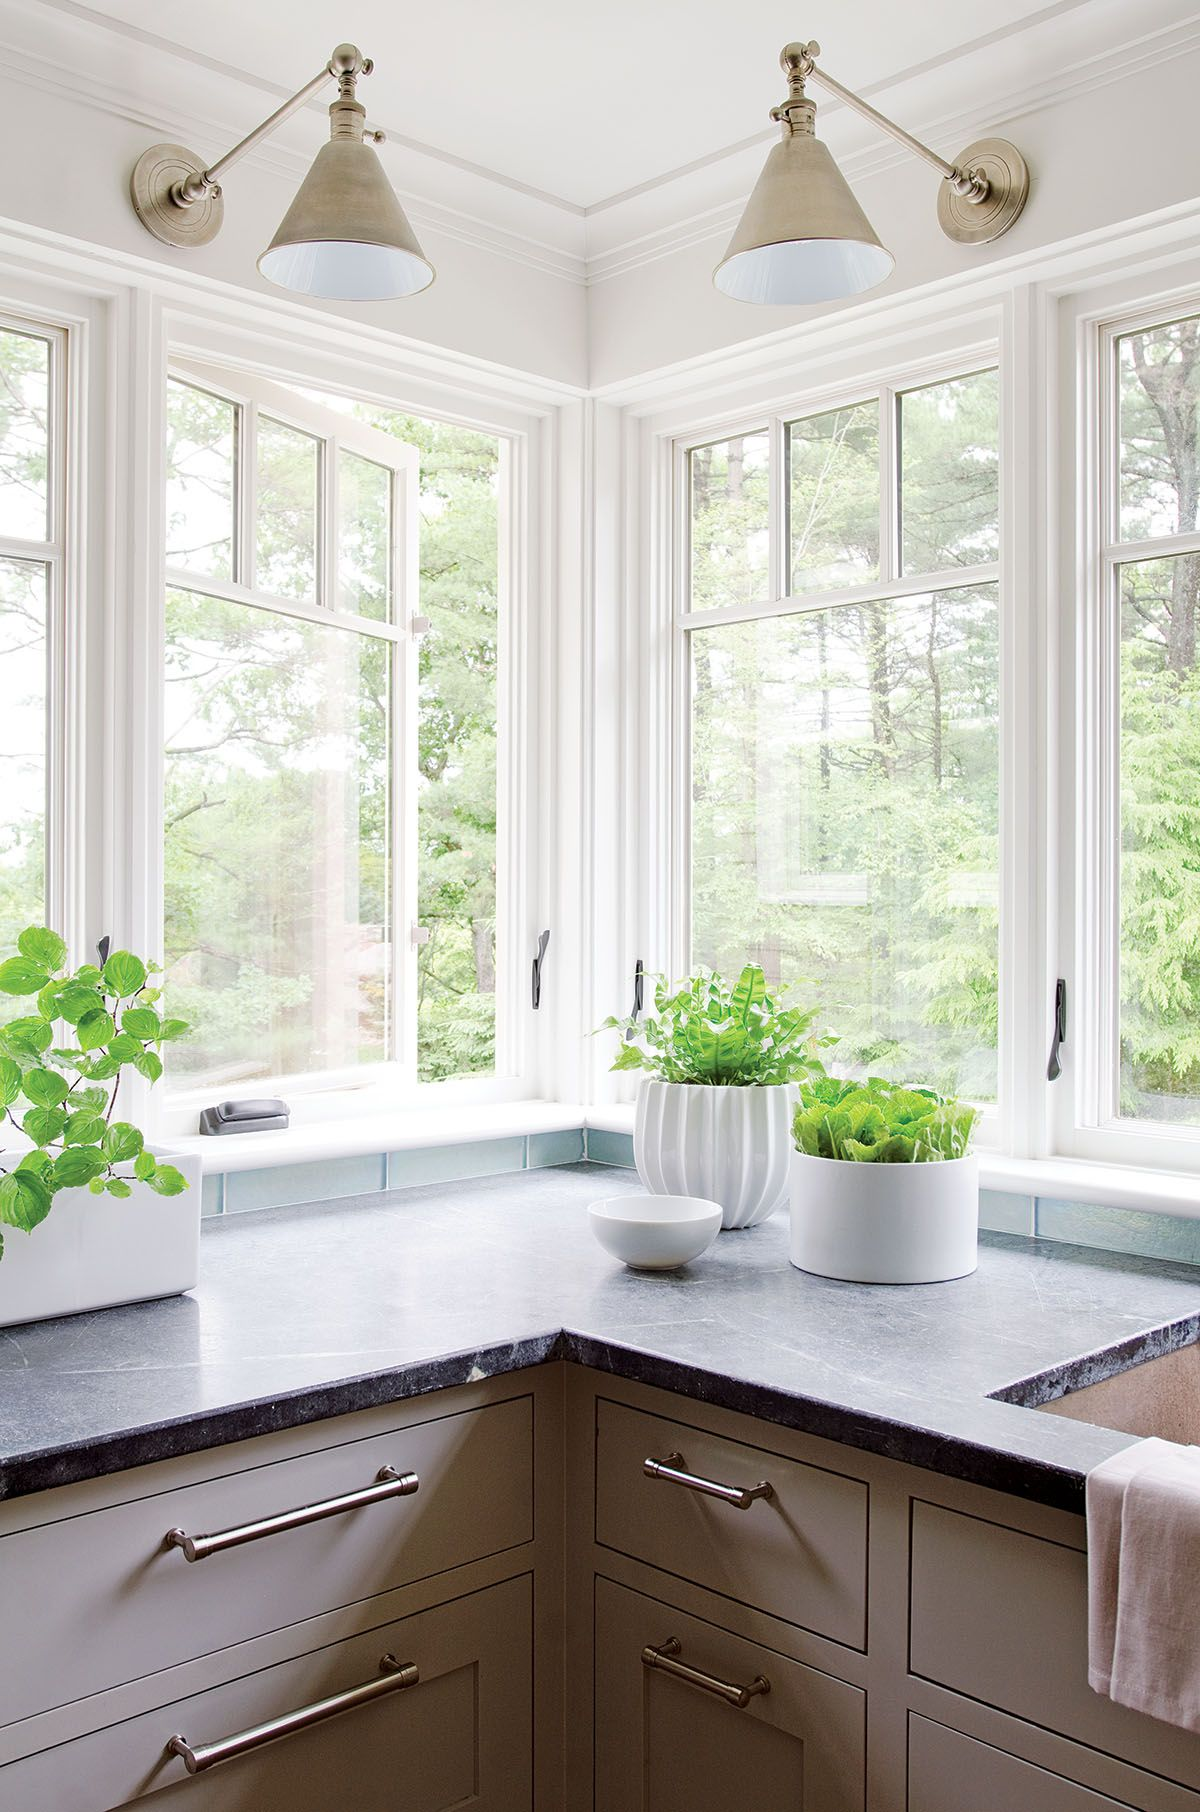 Kitchens Guide 2014 soapstone countertops